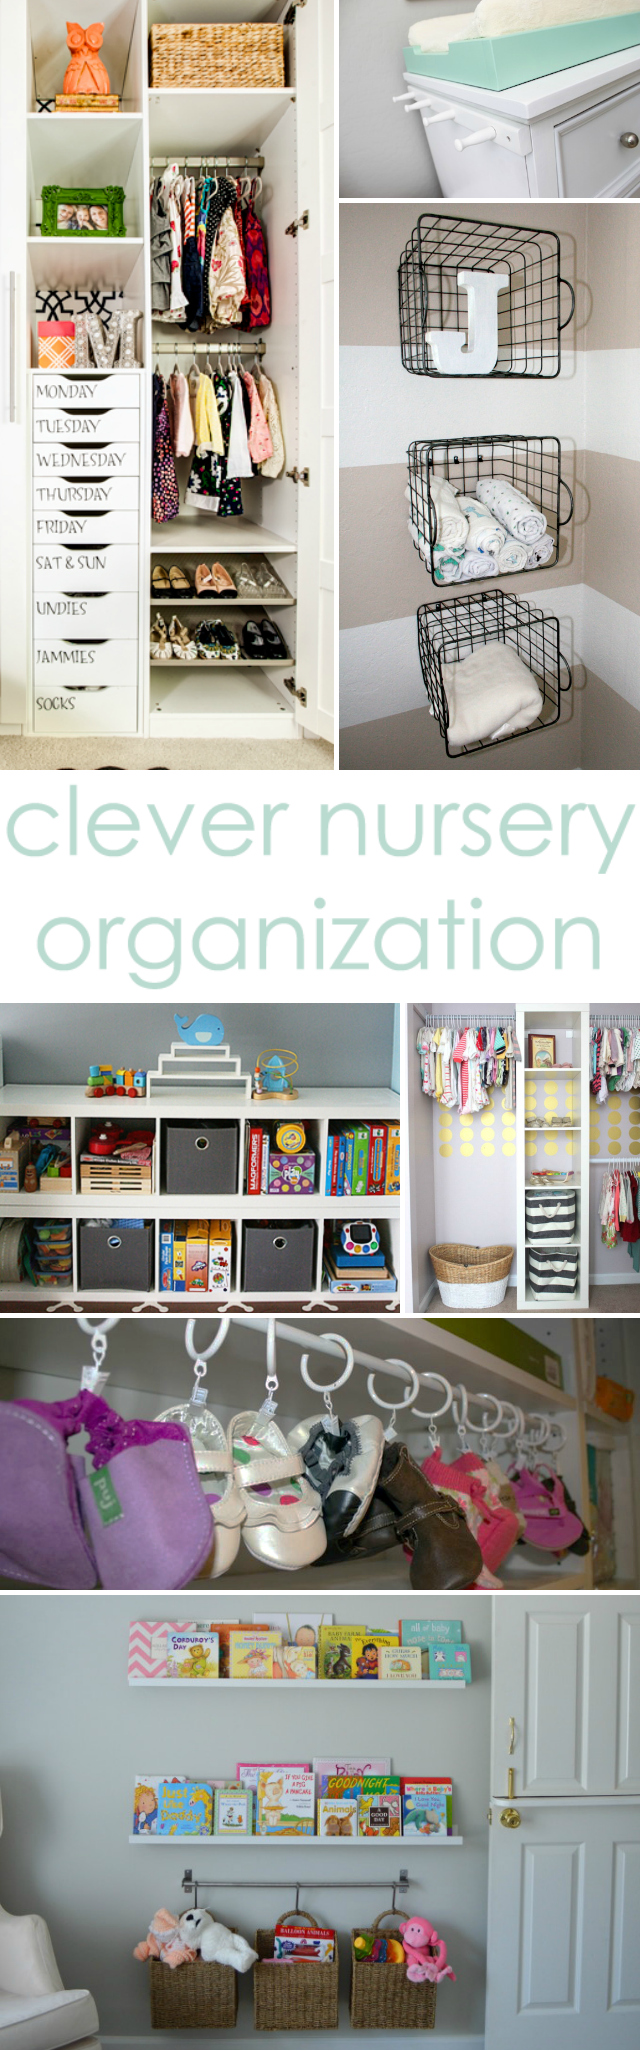 Nursery Organization Ideas  Project Nursery